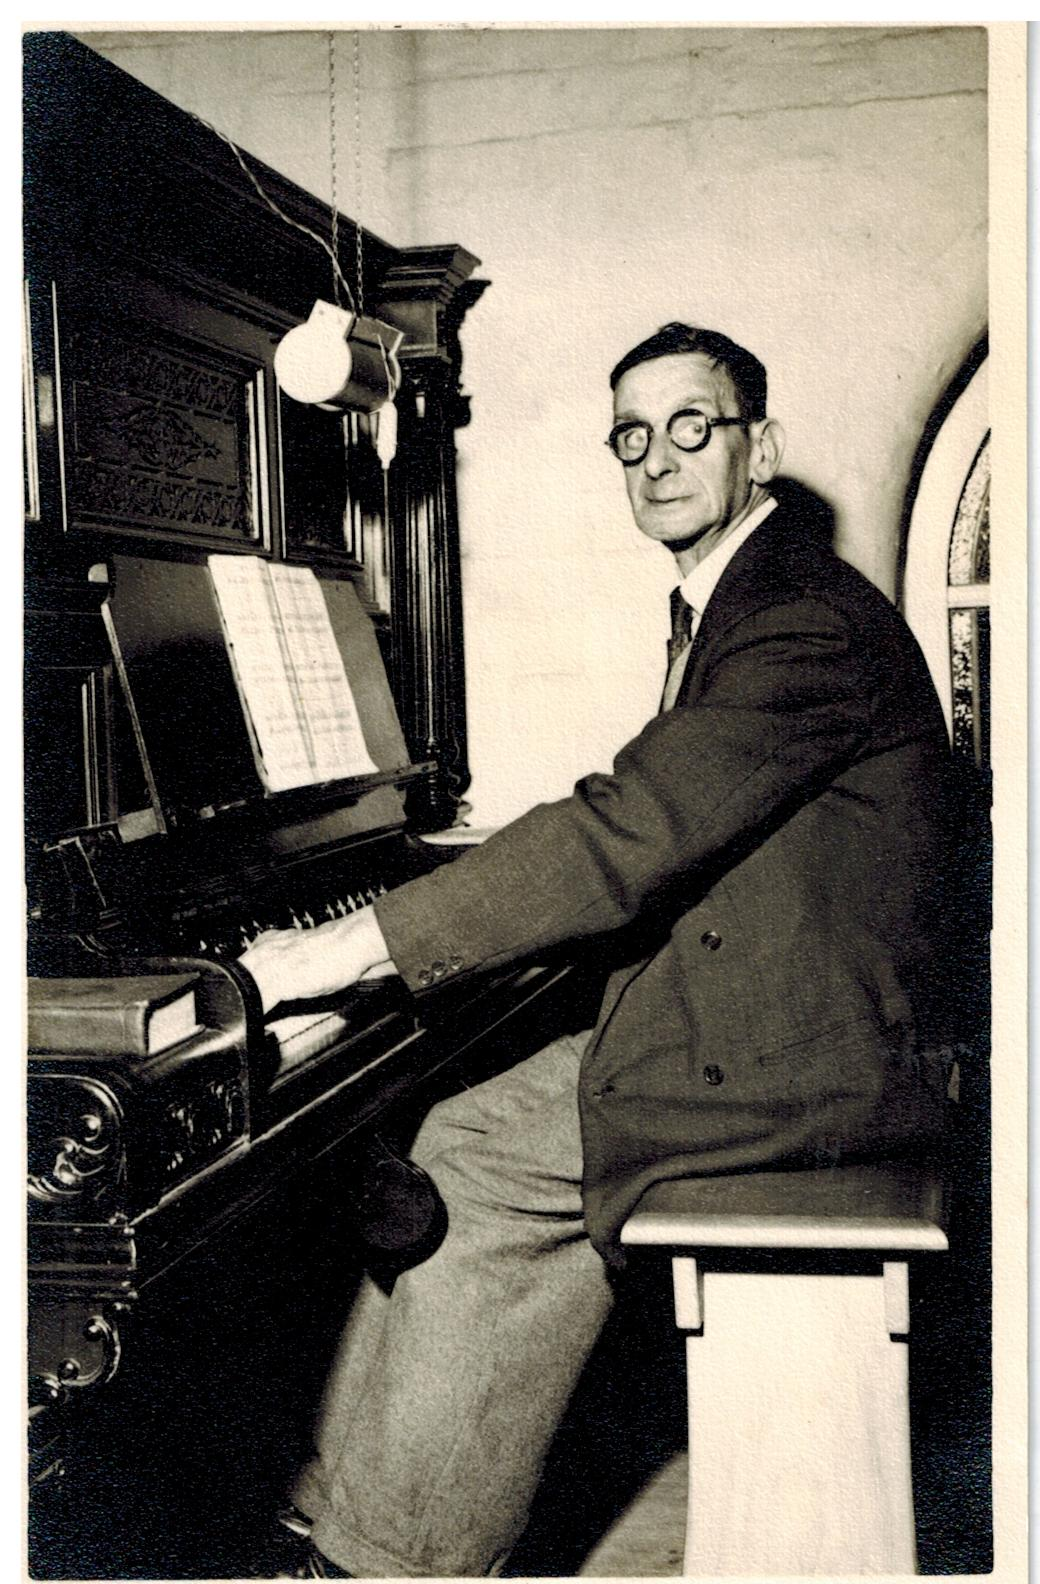 F065_Percy-Bache_Completes-60yrs-as-organist